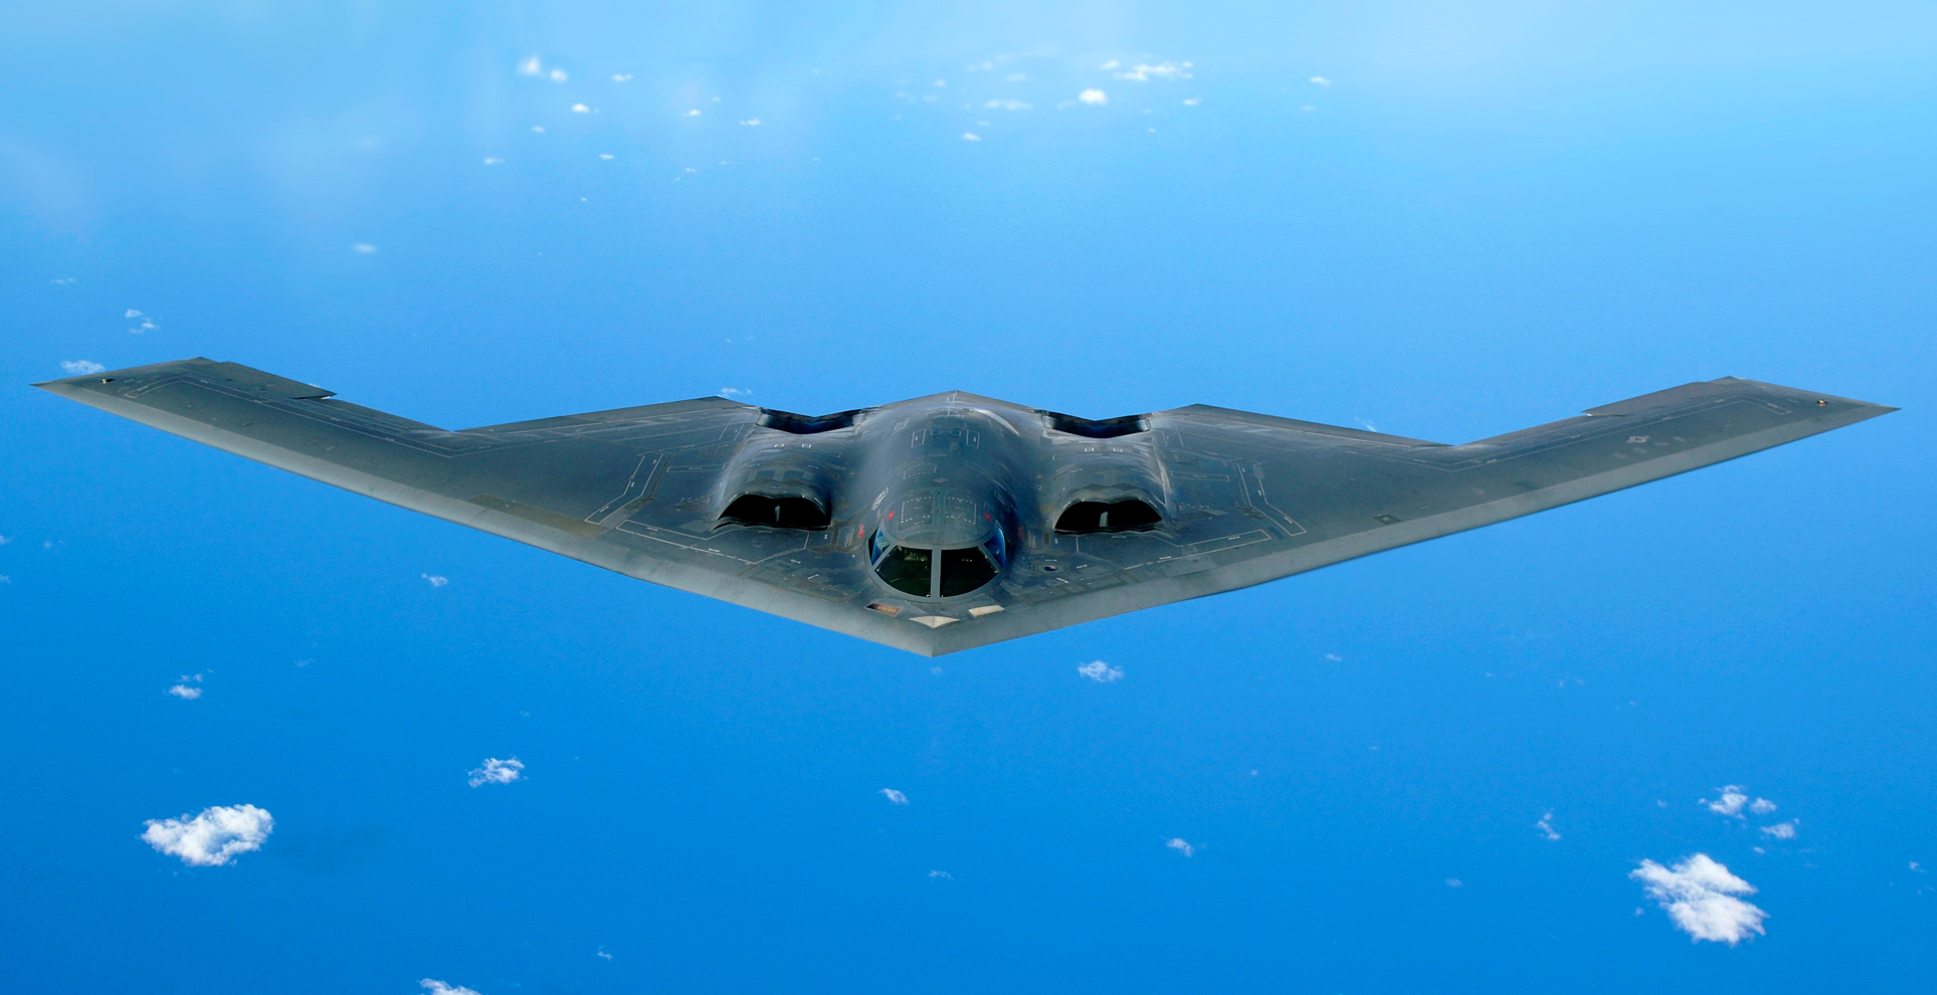 Problems in Stealth Land: B-2 Spirit Bomber Makes Emergency Landing In Colorado